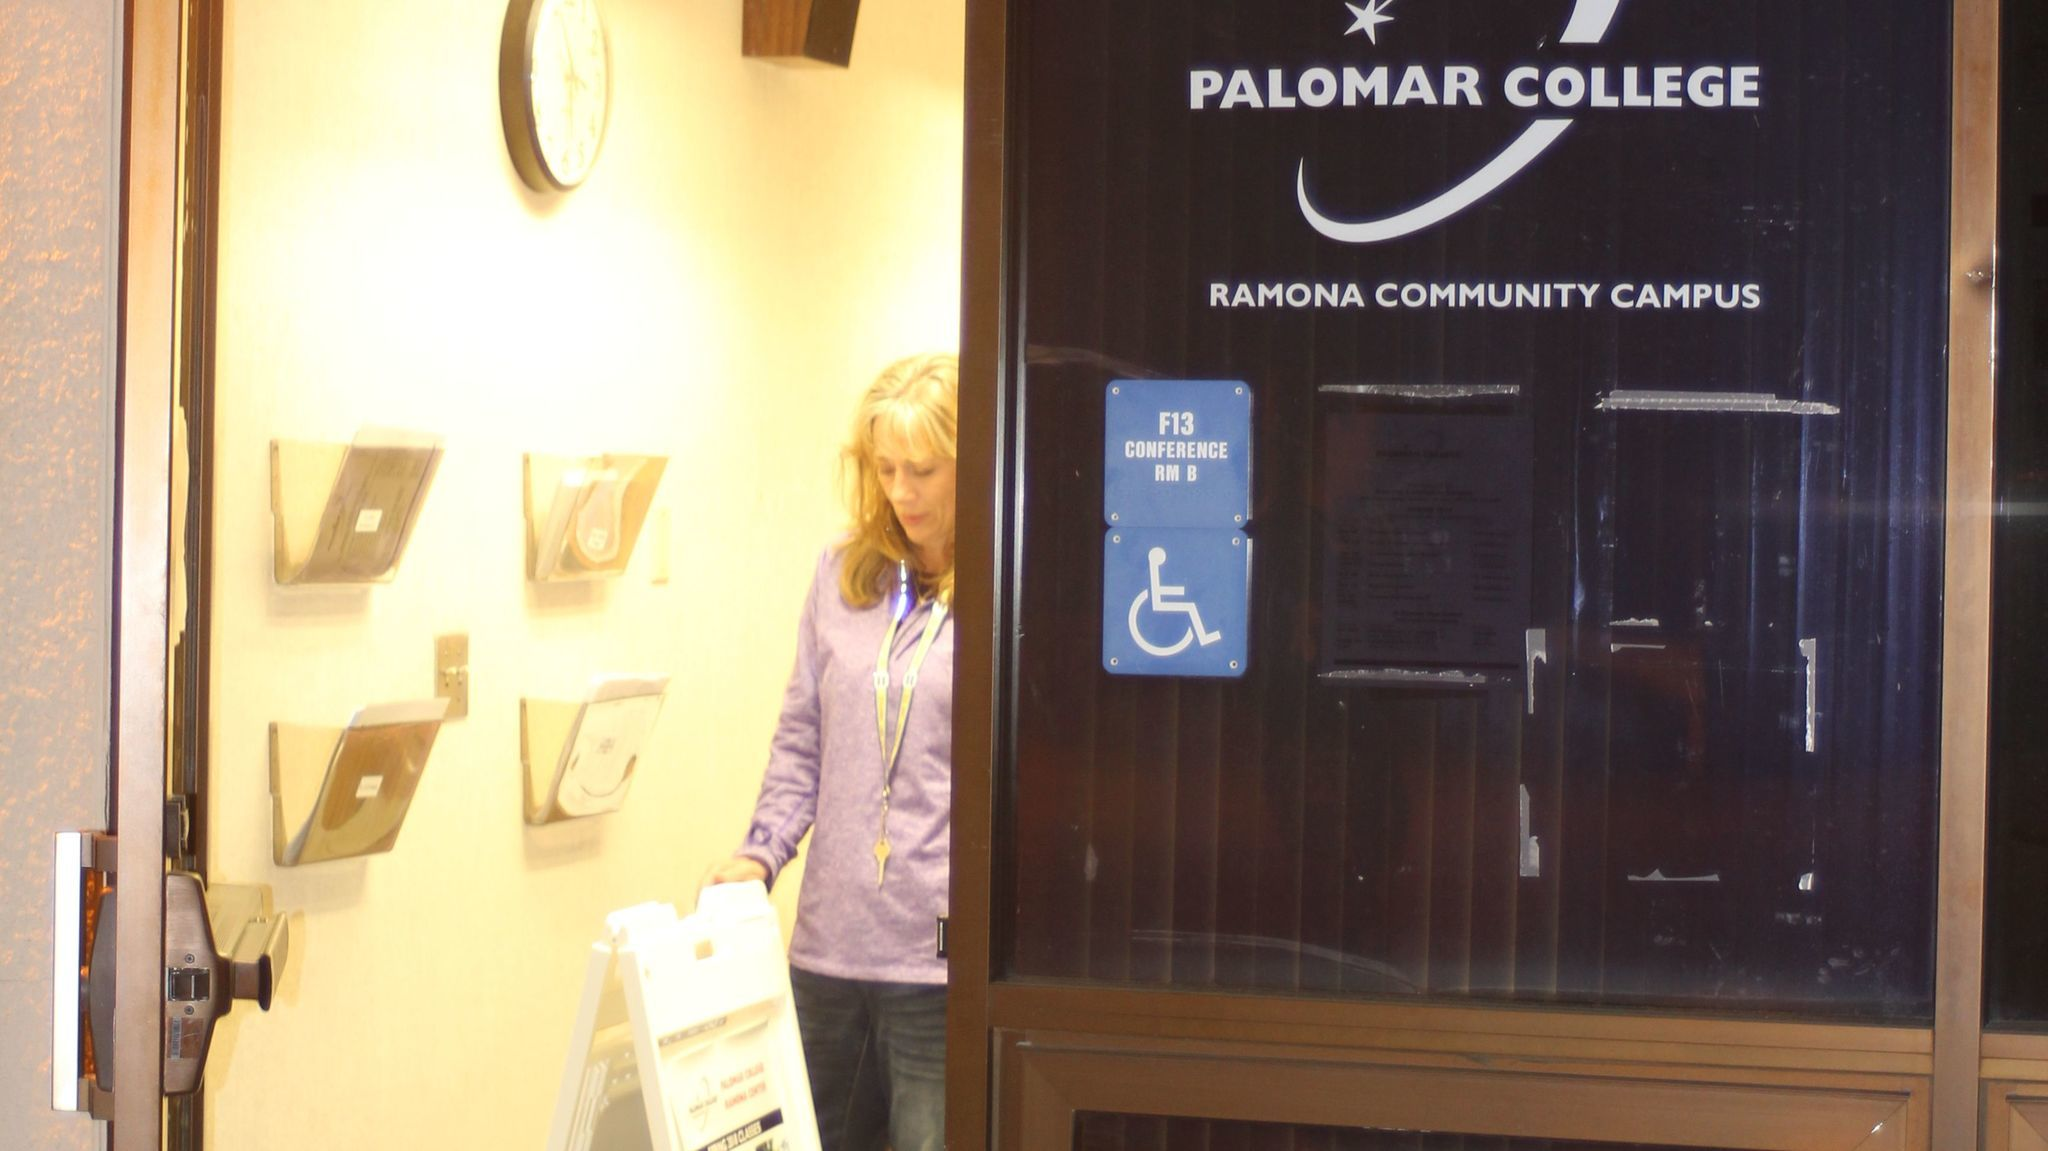 Leighanne Kirchner, the office manager for Palomar College on the Ramona Community Campus, works on advertising the schedule for current and future Palomar classes.